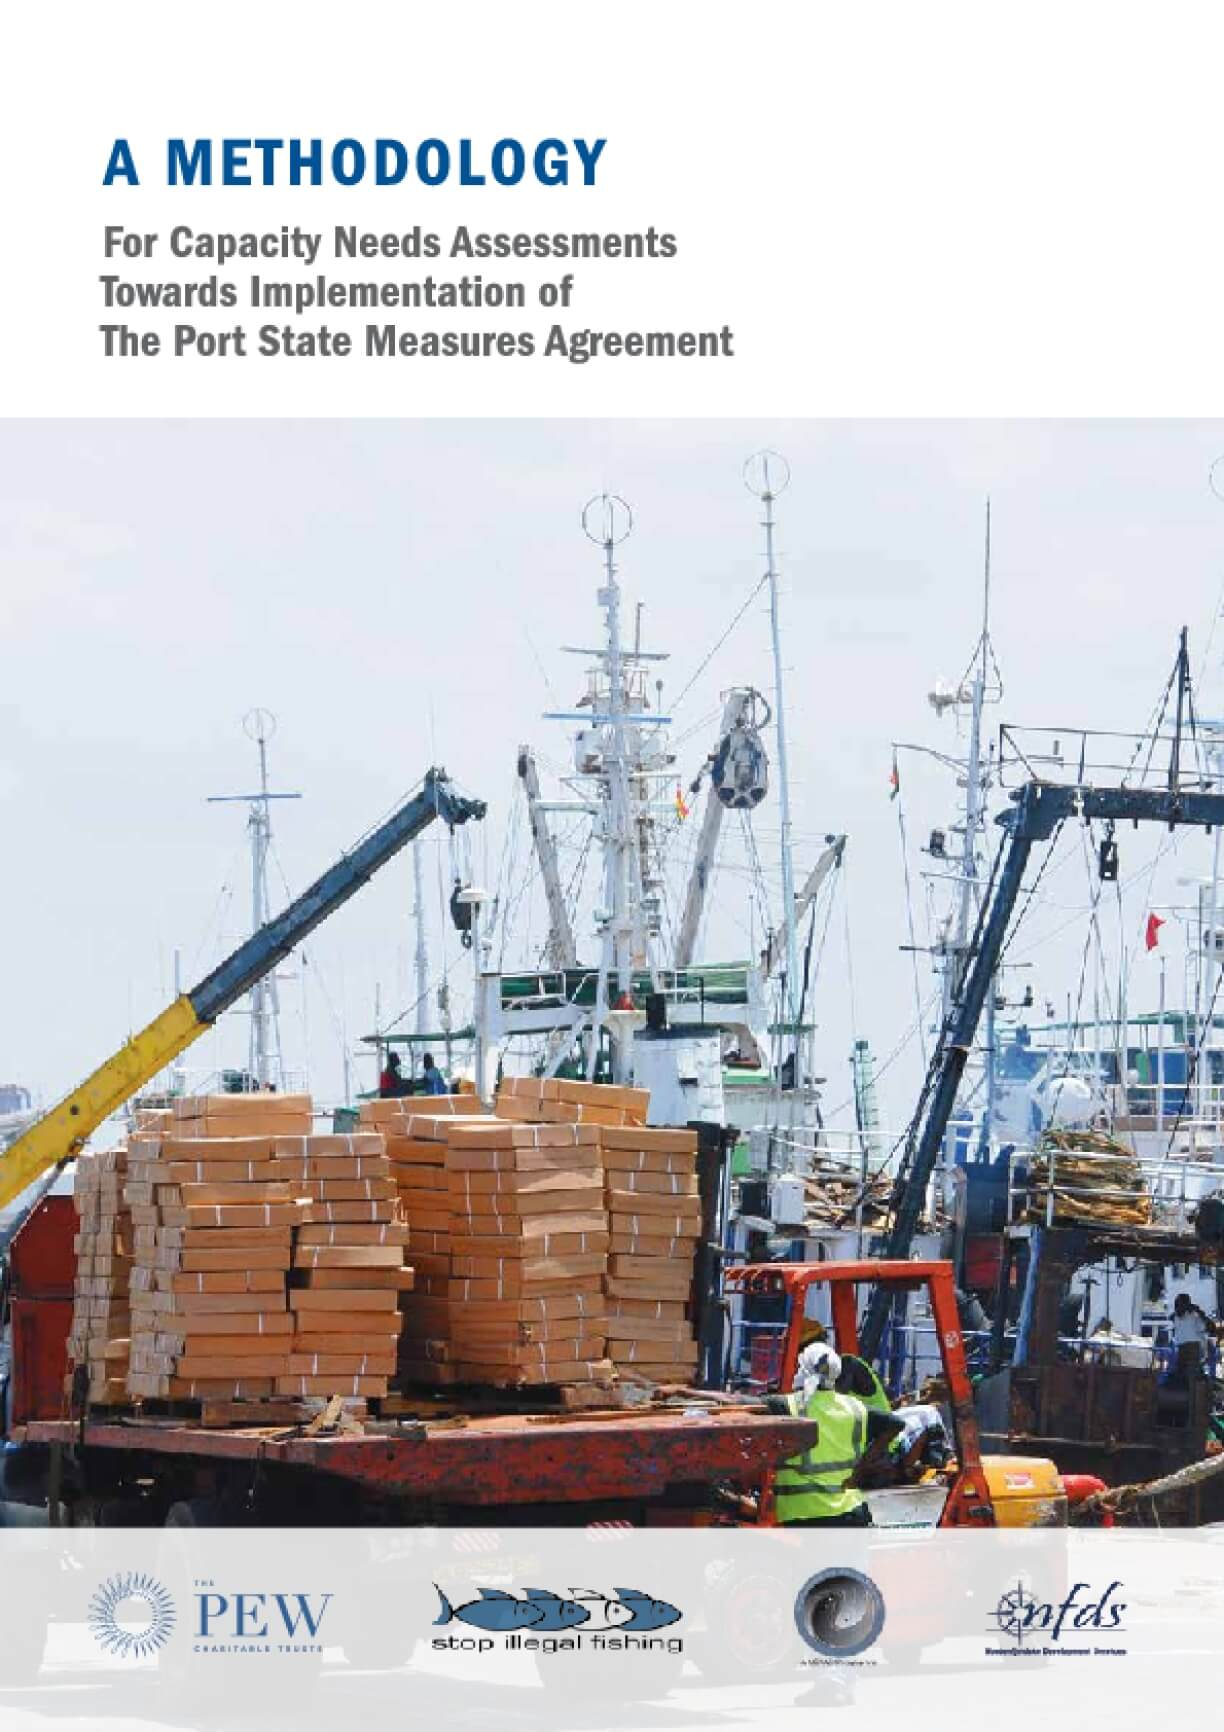 A Methodology for Capacity Needs Assessments Towards Implementation of the Port State Measures Agreement